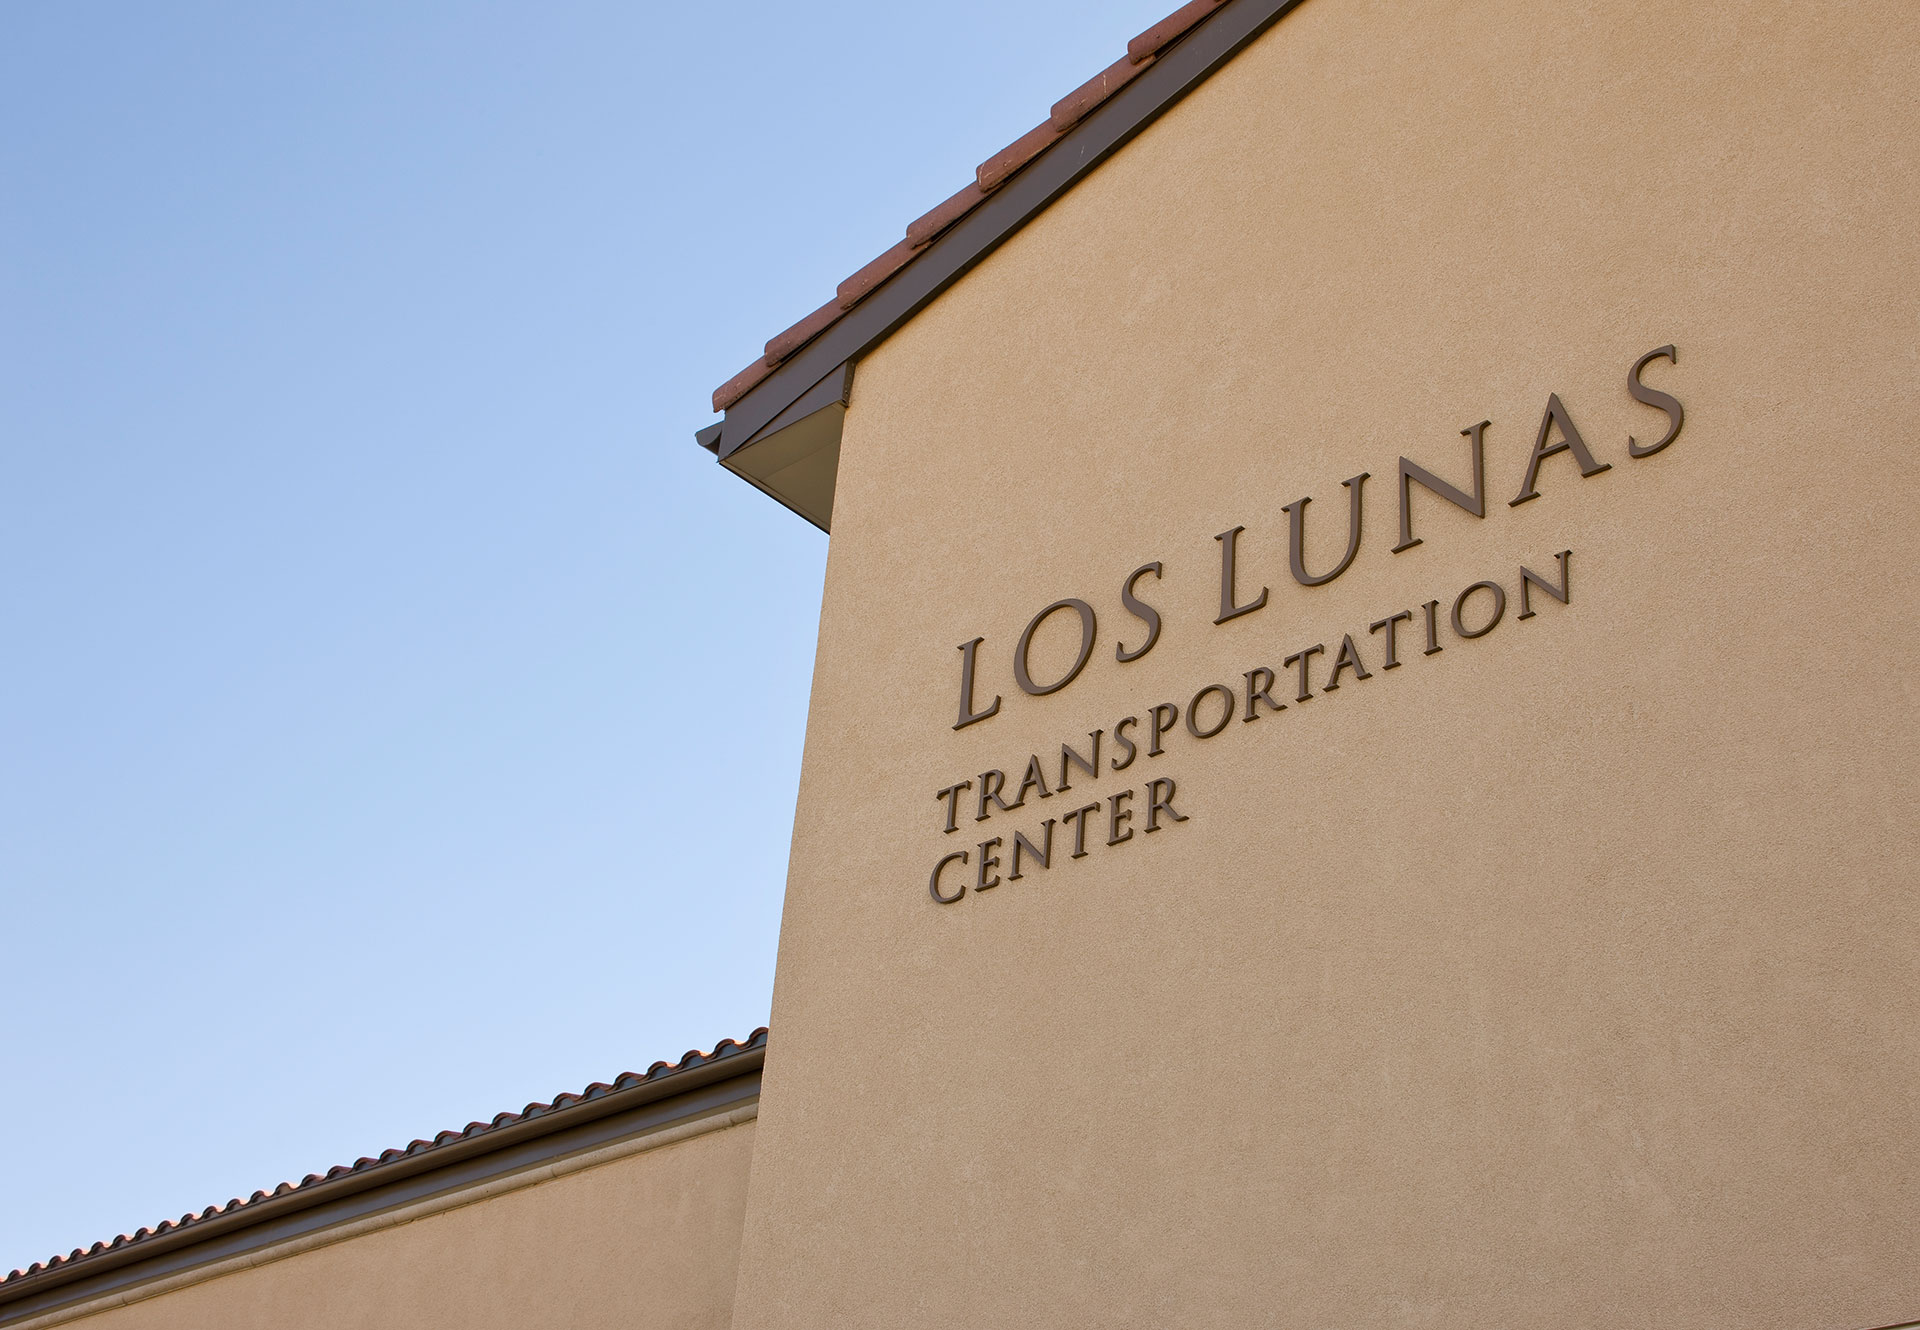 Los Lunas Transportation Center